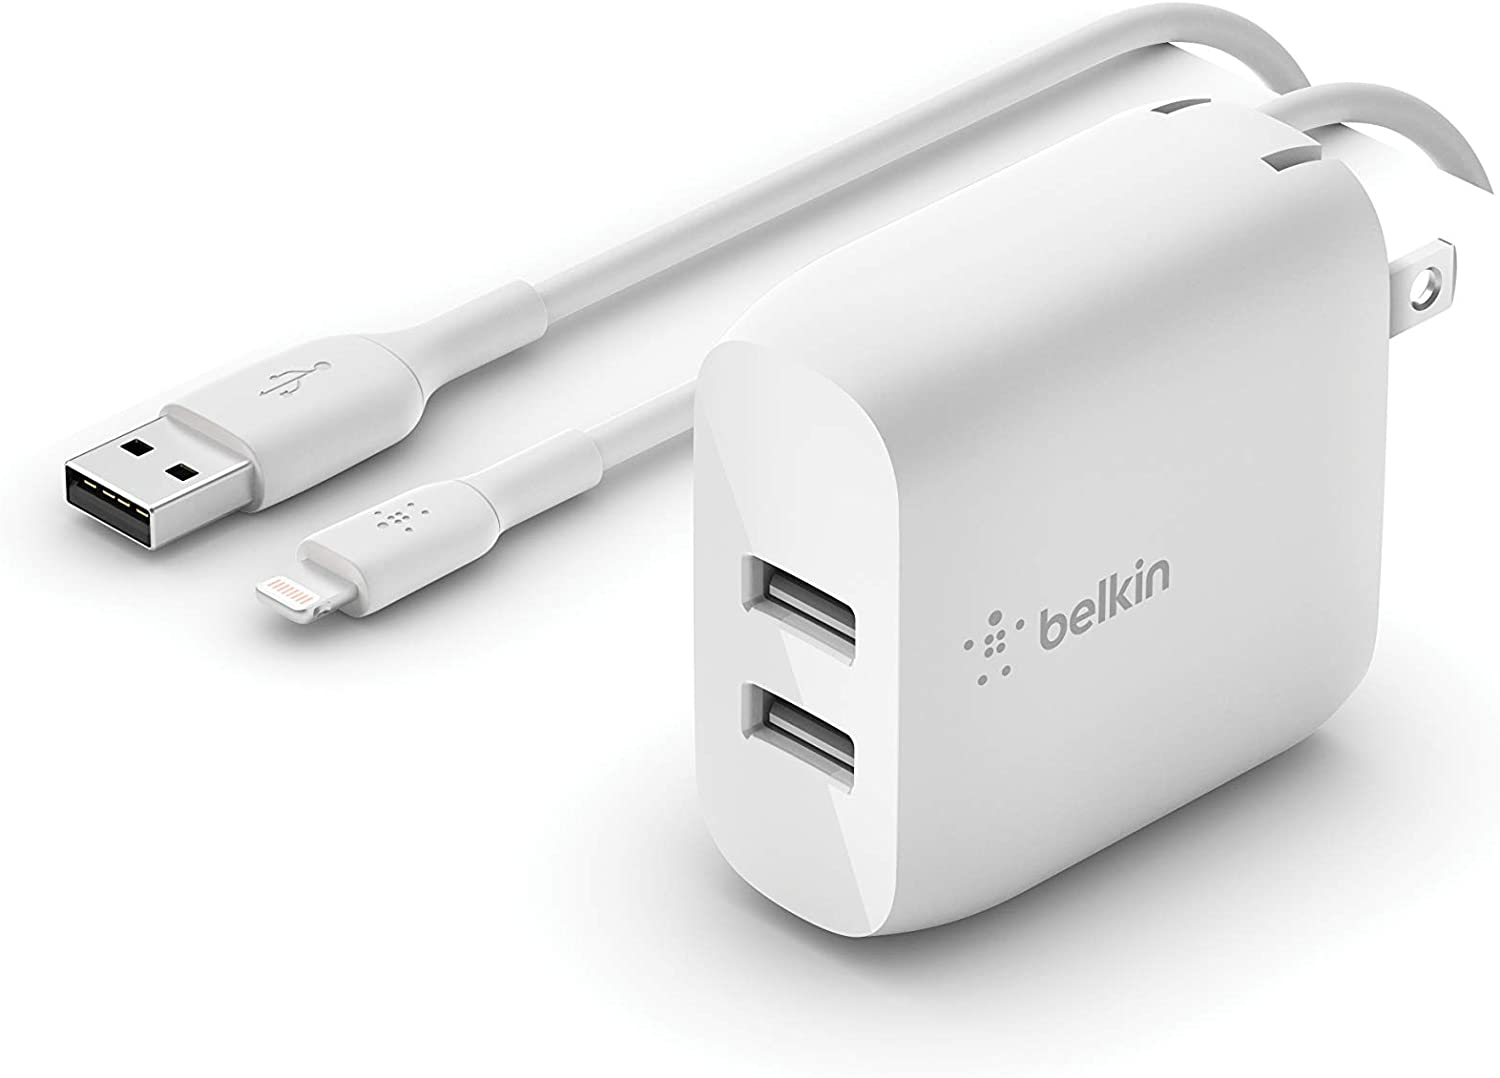 Belkin Dual USB Charger 24W + Lightning Cable (Dual USB Wall Charger Compatible with iPhone SE, 11, 11 Pro, 11 Pro Max, XS, XS Max, XR, X, 8, iPad, AirPods, More), White (WCD001dq1MWH)